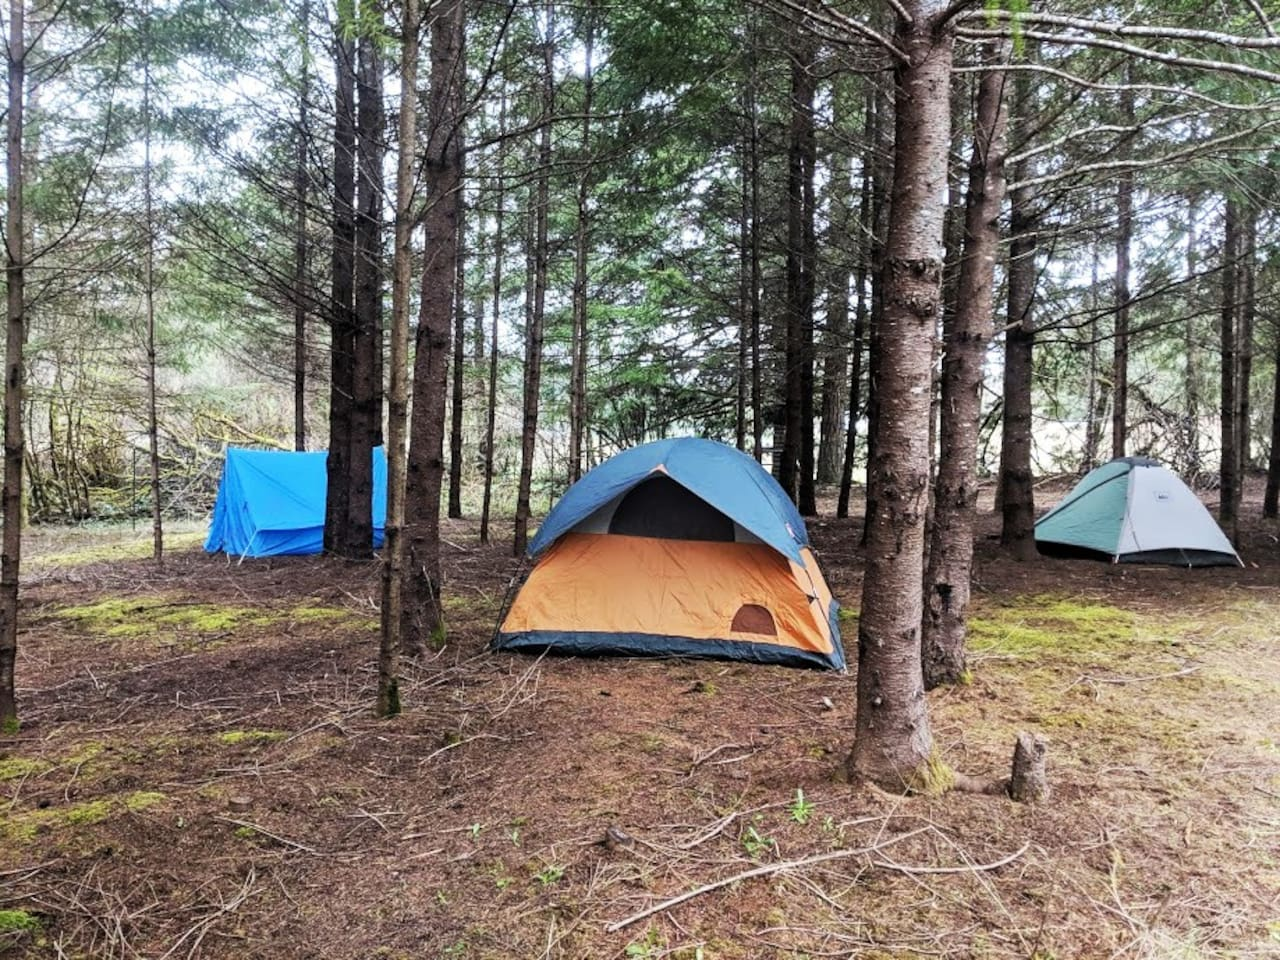 Pitch your tent under the trees or in the pasture  enjoy nature  in one of our three campsites